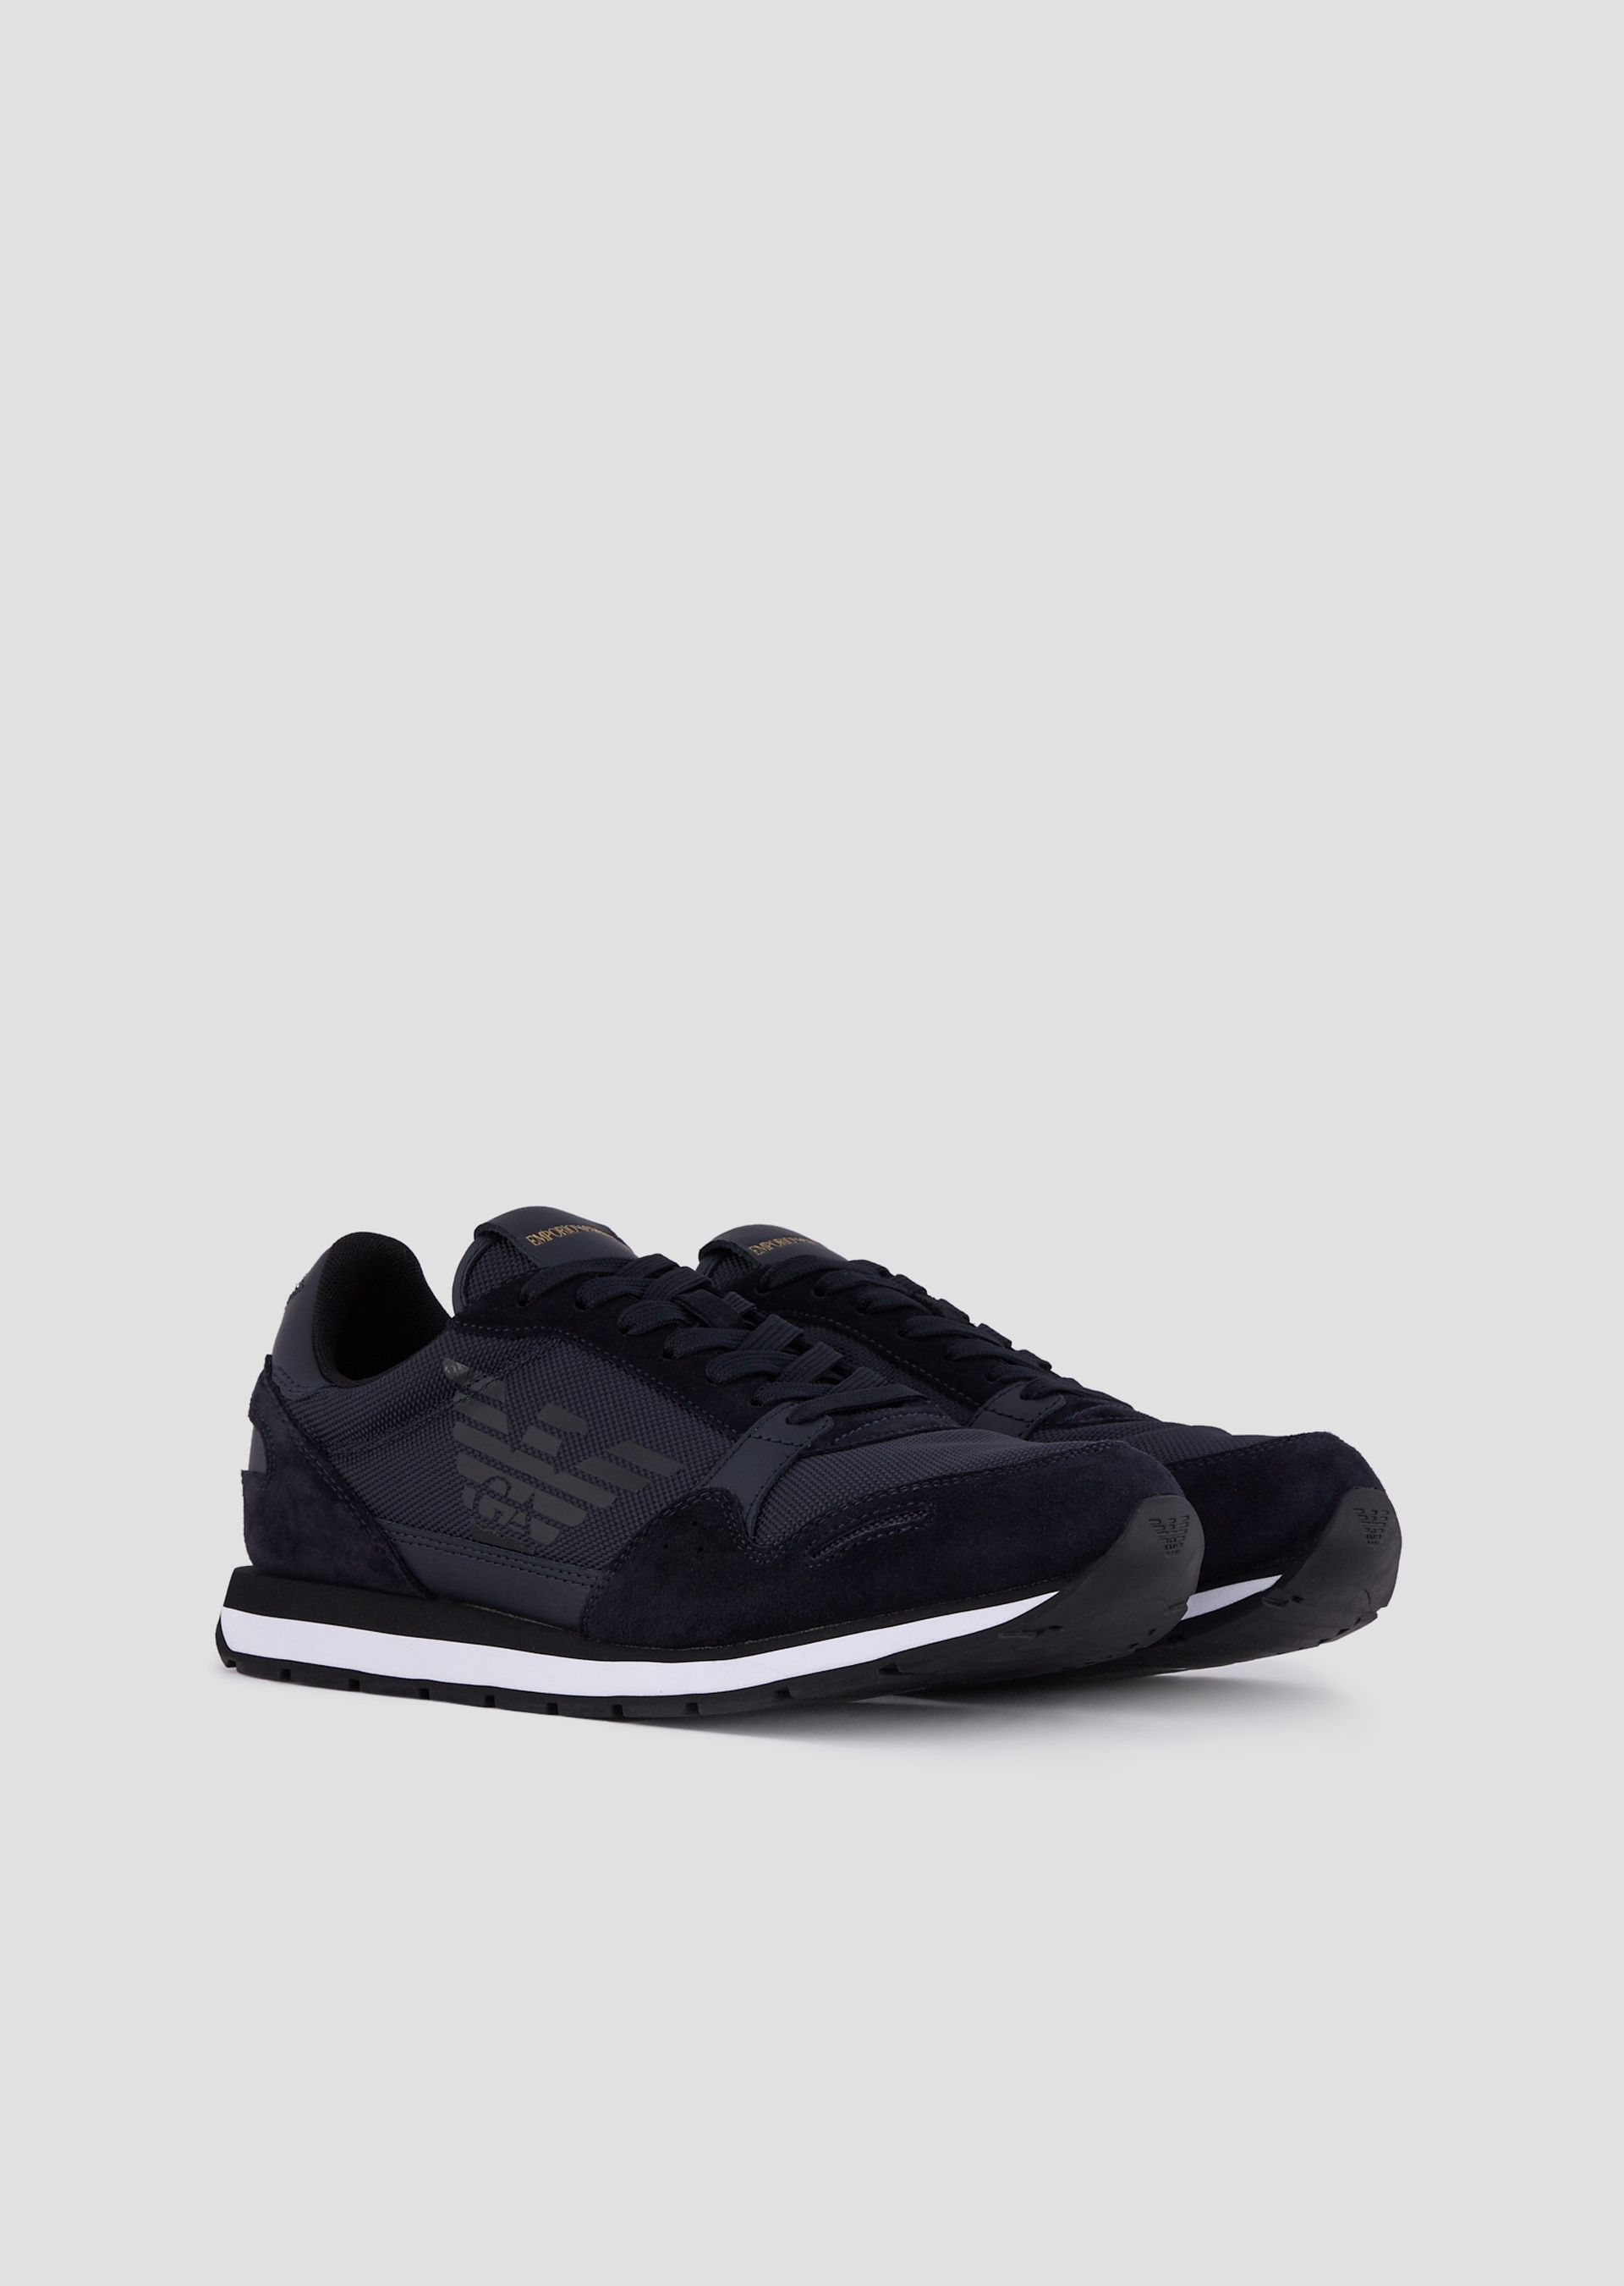 2635bd8fc Emporio Armani Sneakers - Item 11648998 In Navy Blue | ModeSens